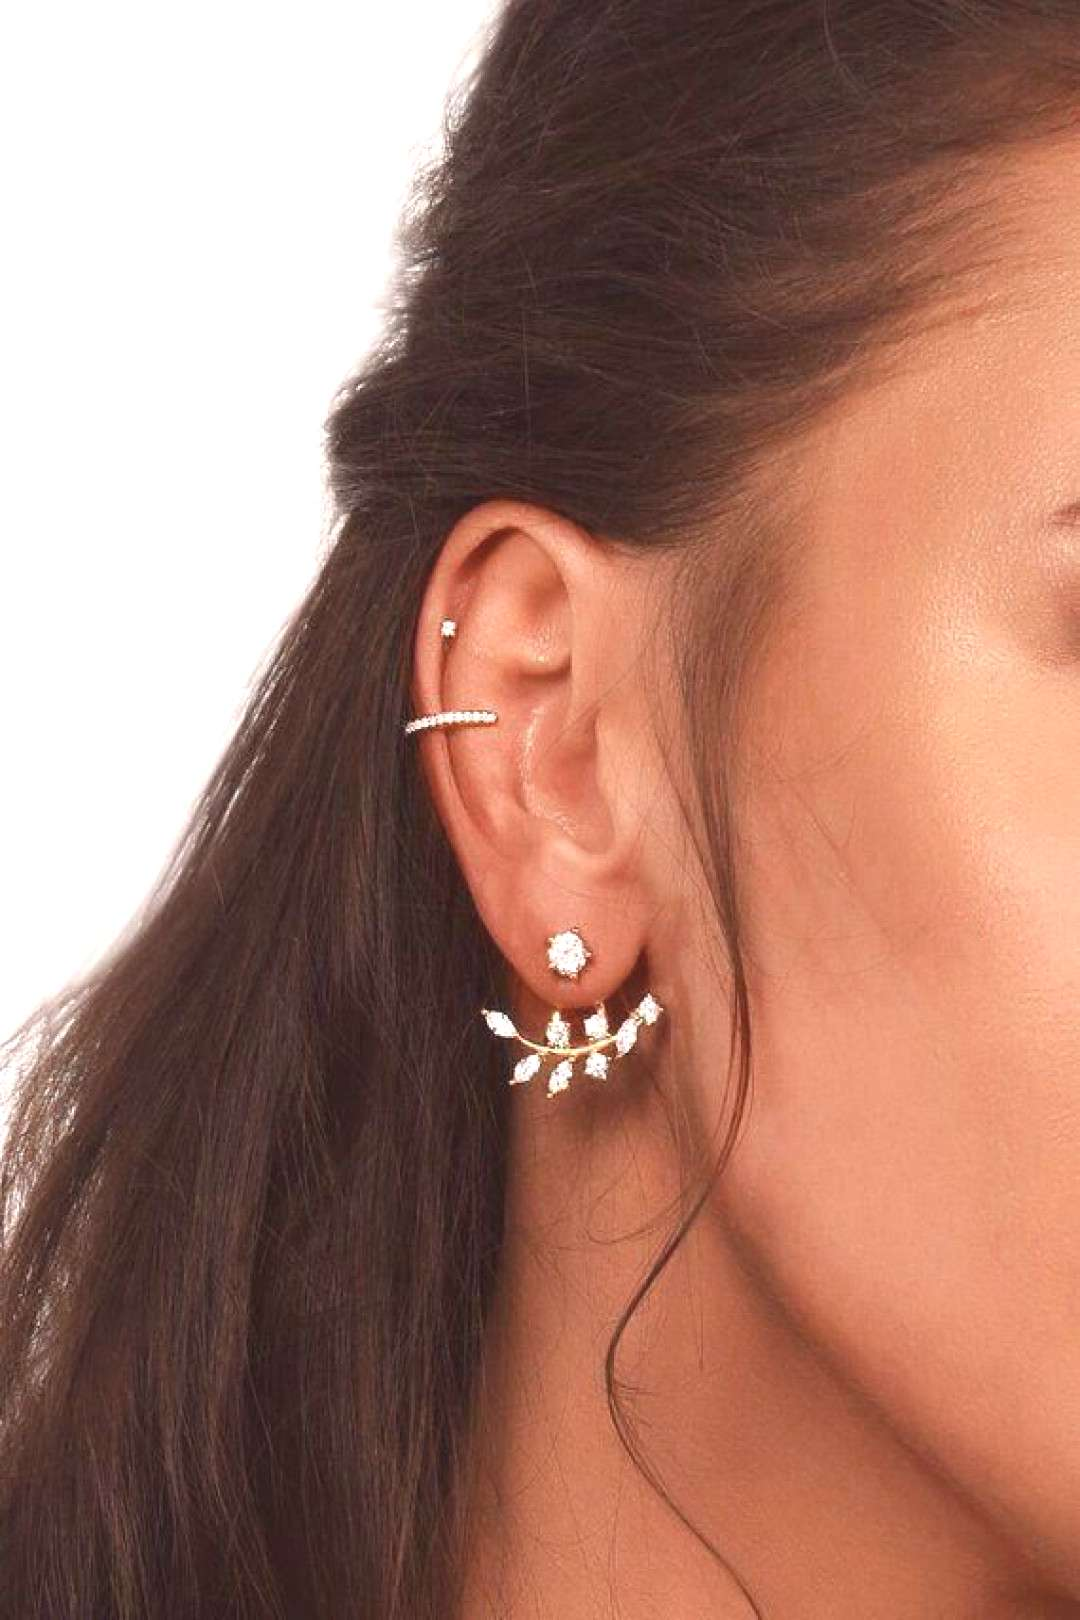 Ear jacket, leaf earrings, jacket earrings, silver earrings, gift ideas